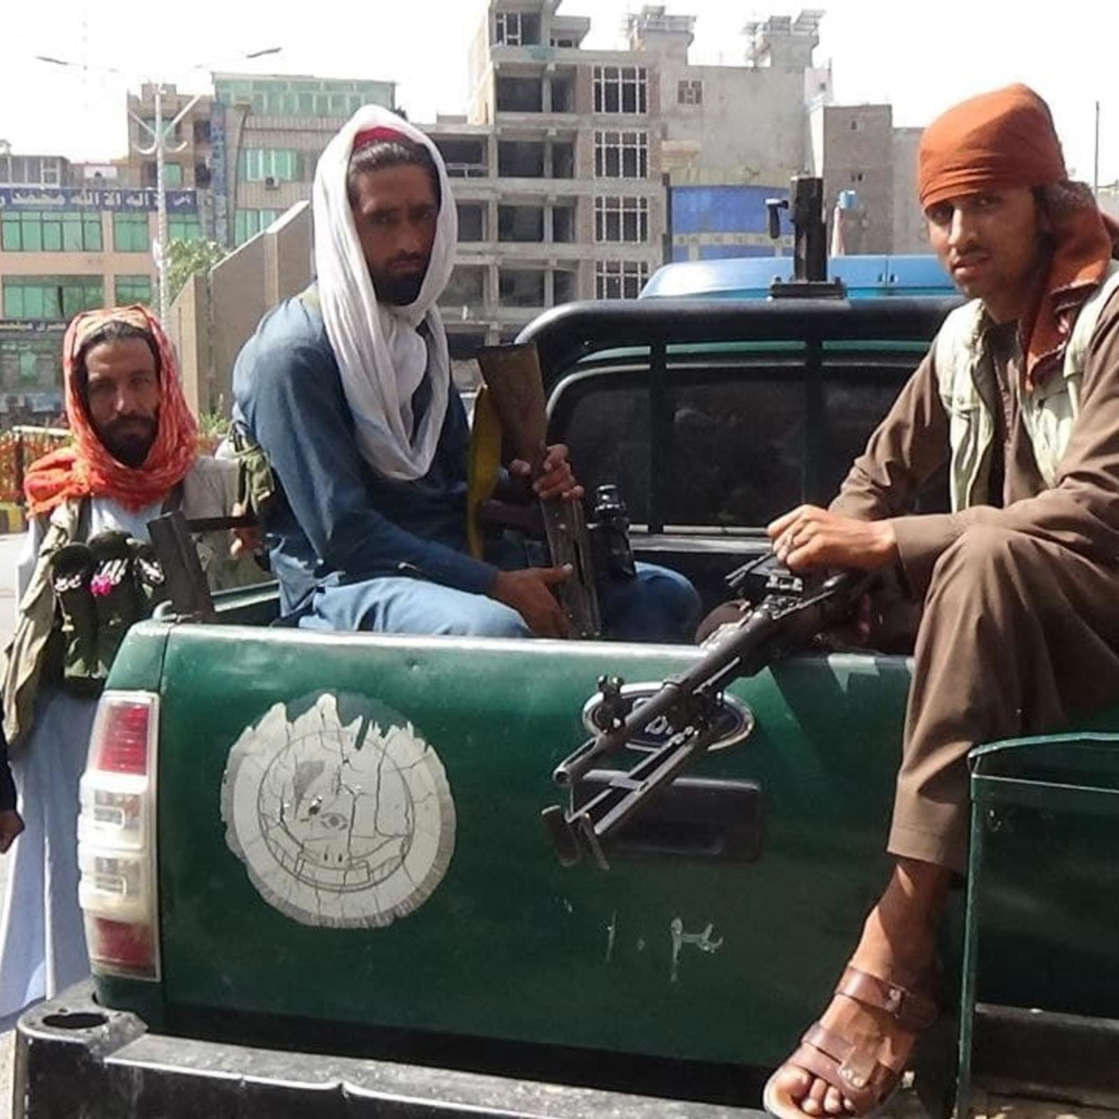 a man standing in front of a bus: Taliban patrols Jalalabad city